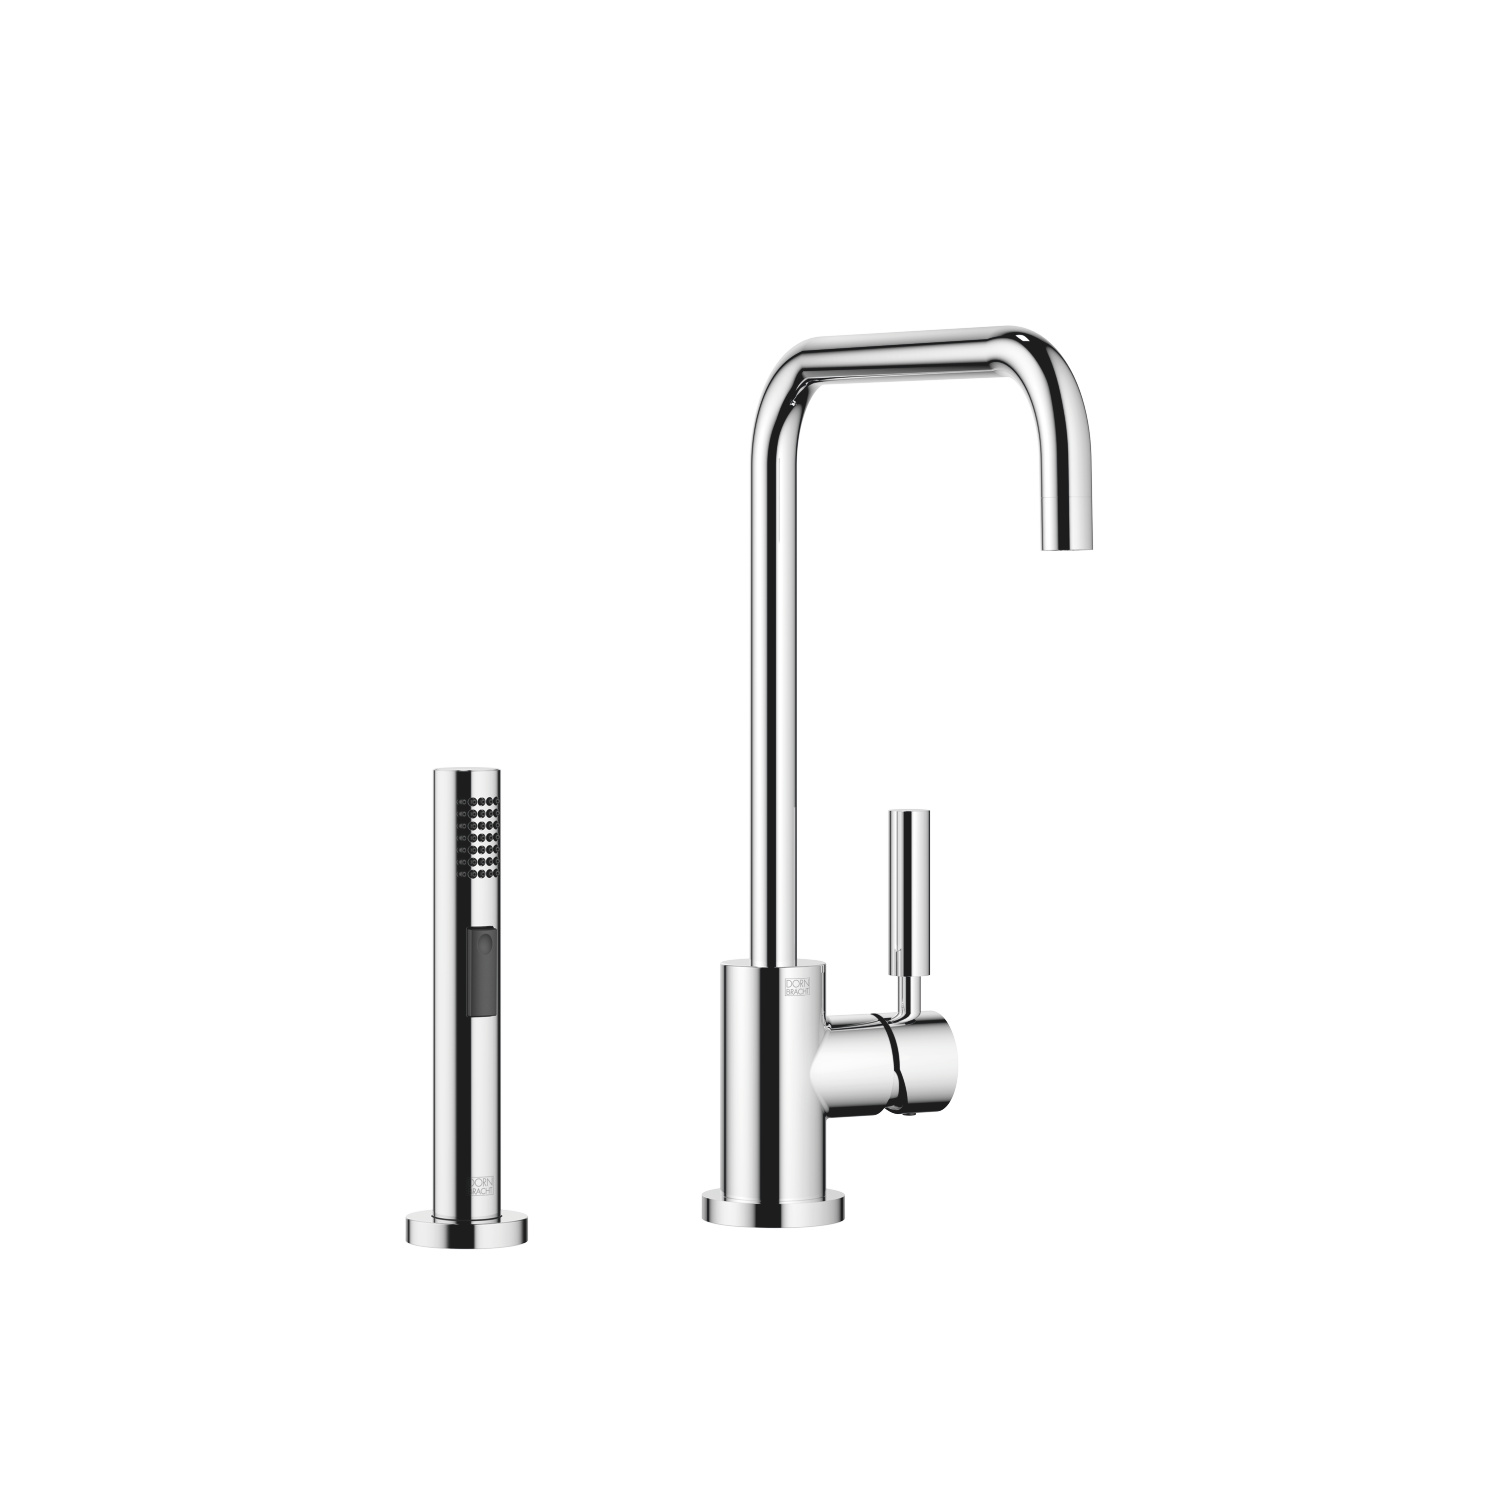 Single-lever mixer with rinsing spray set - polished chrome - 33 820 625-00 + 27 721 970-00